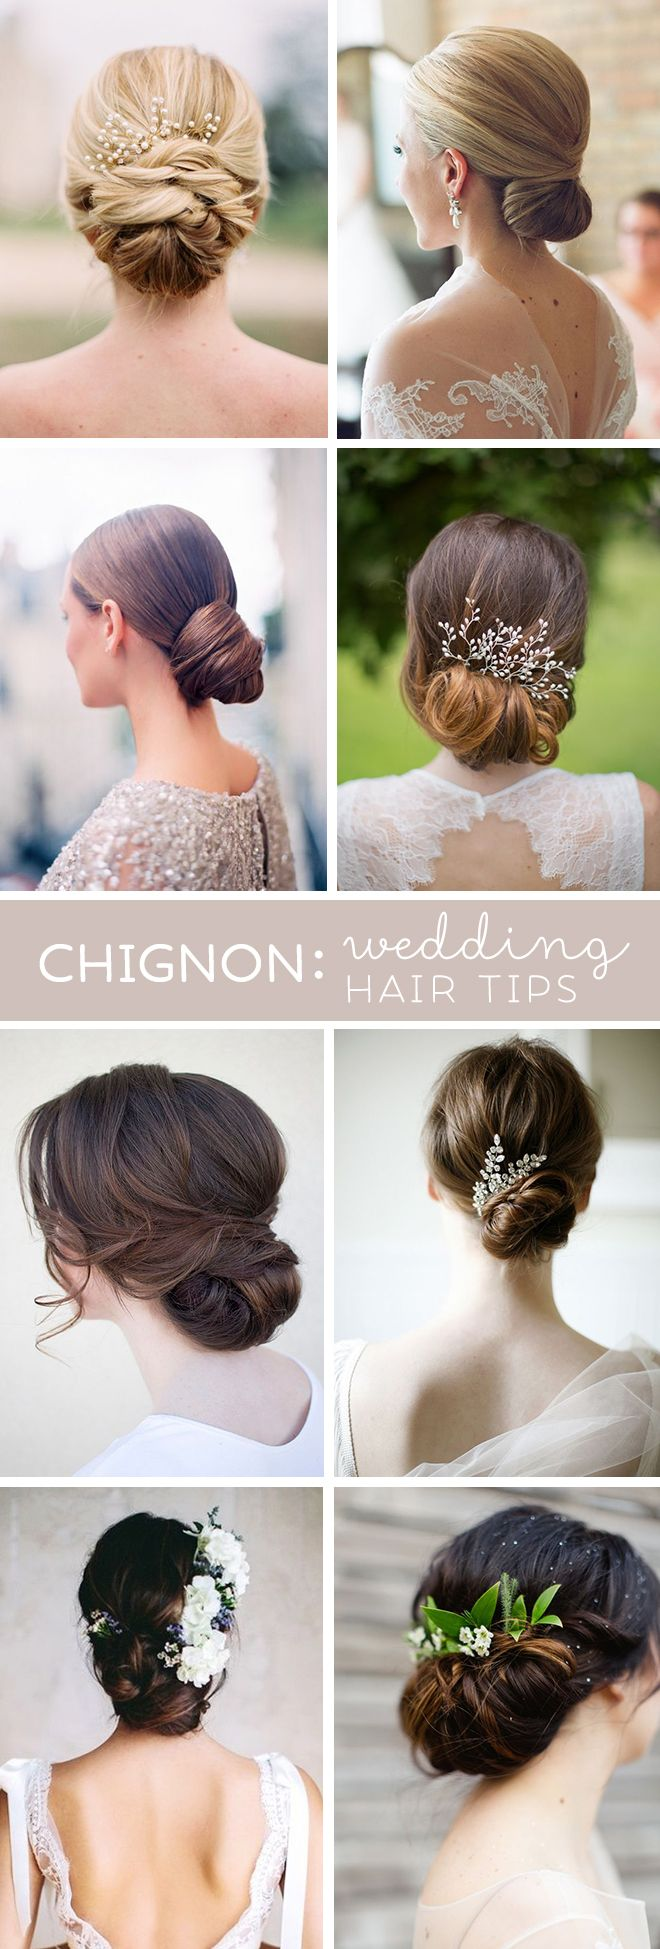 the best wedding hair tips for wearing a chignon! | creative